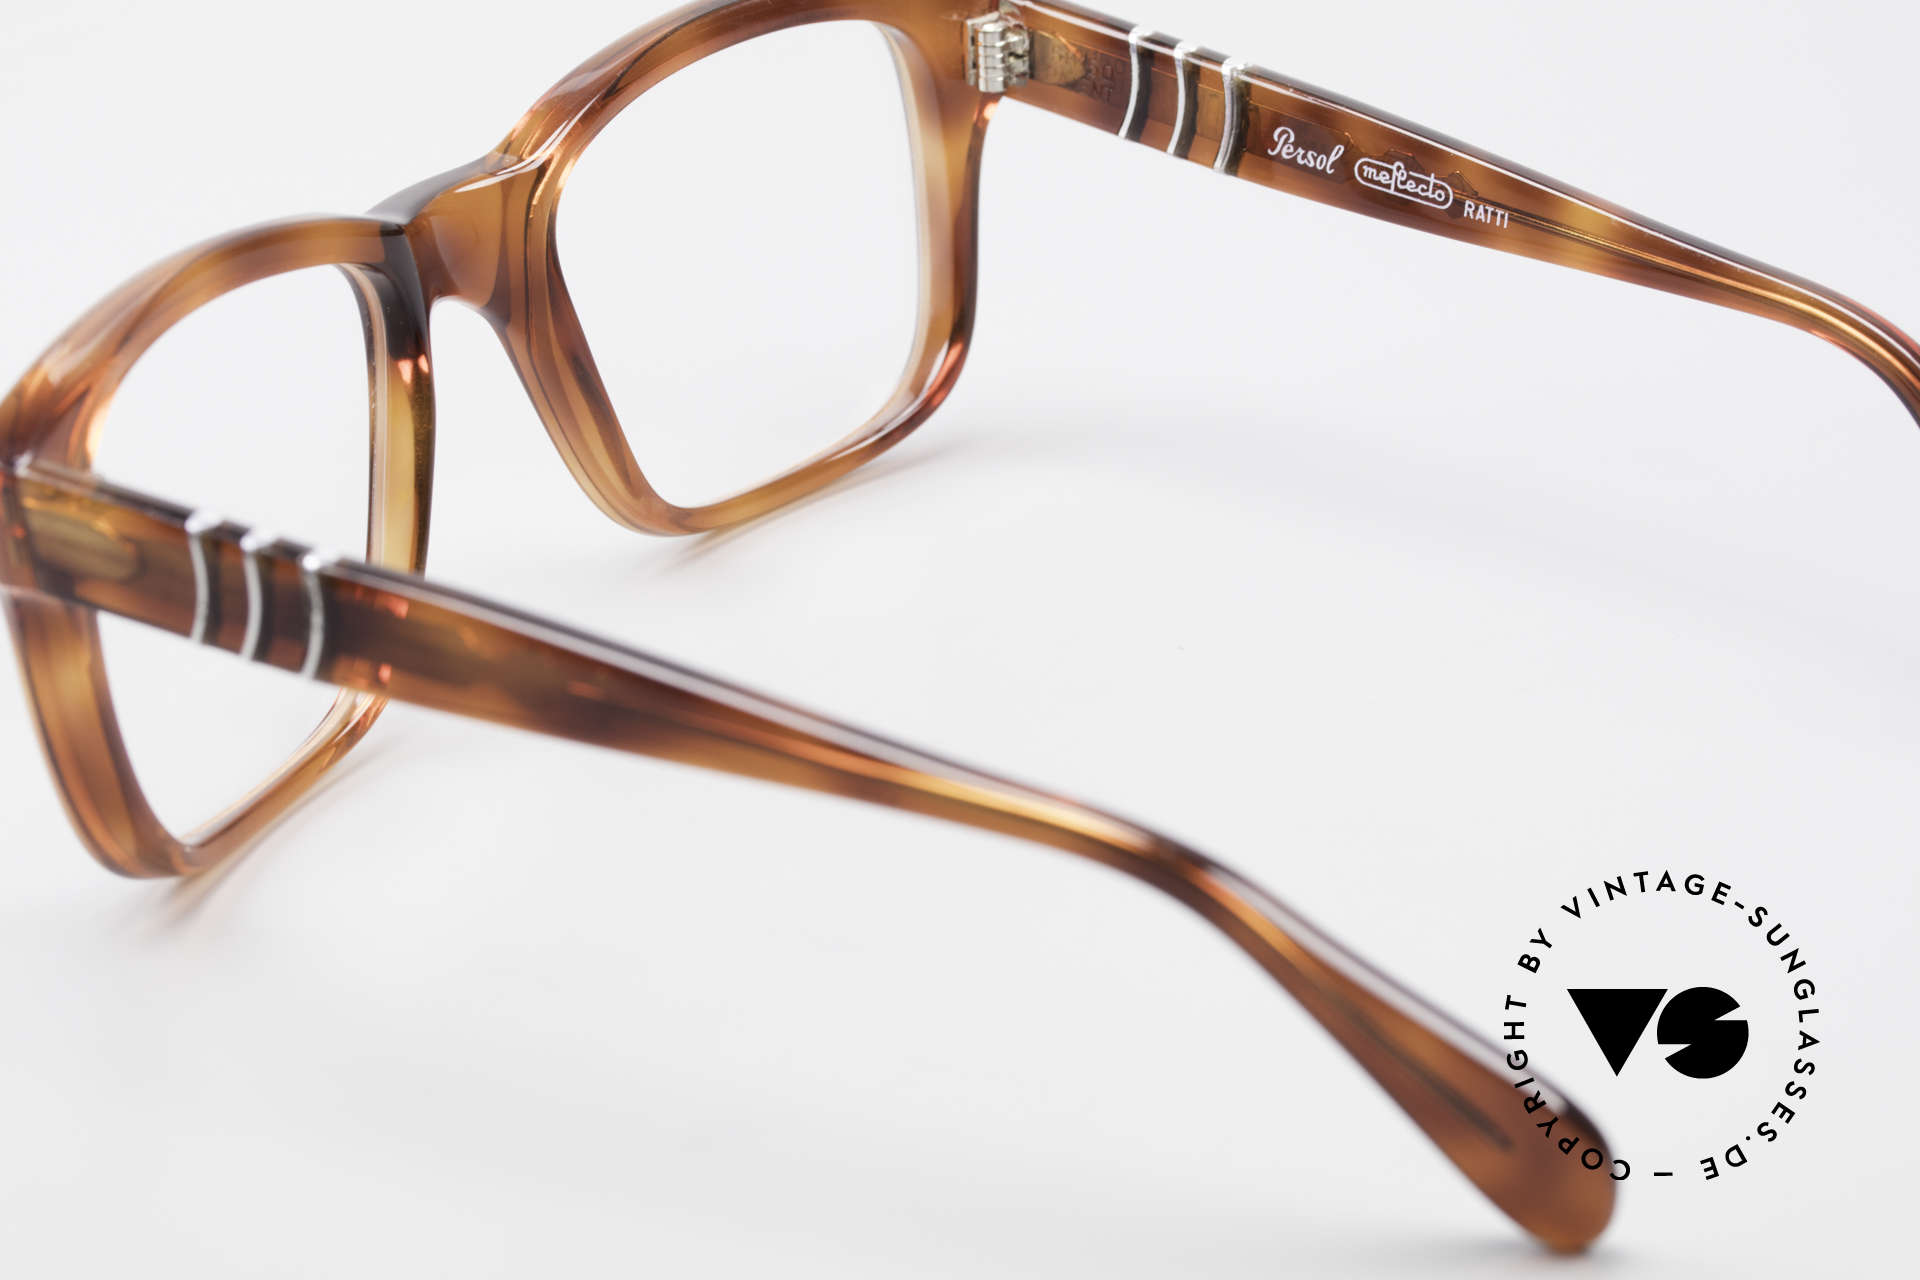 Persol 58150 Ratti Old School Vintage Eyeglasses, the frame can be glazed with optical lenses of any kind, Made for Men